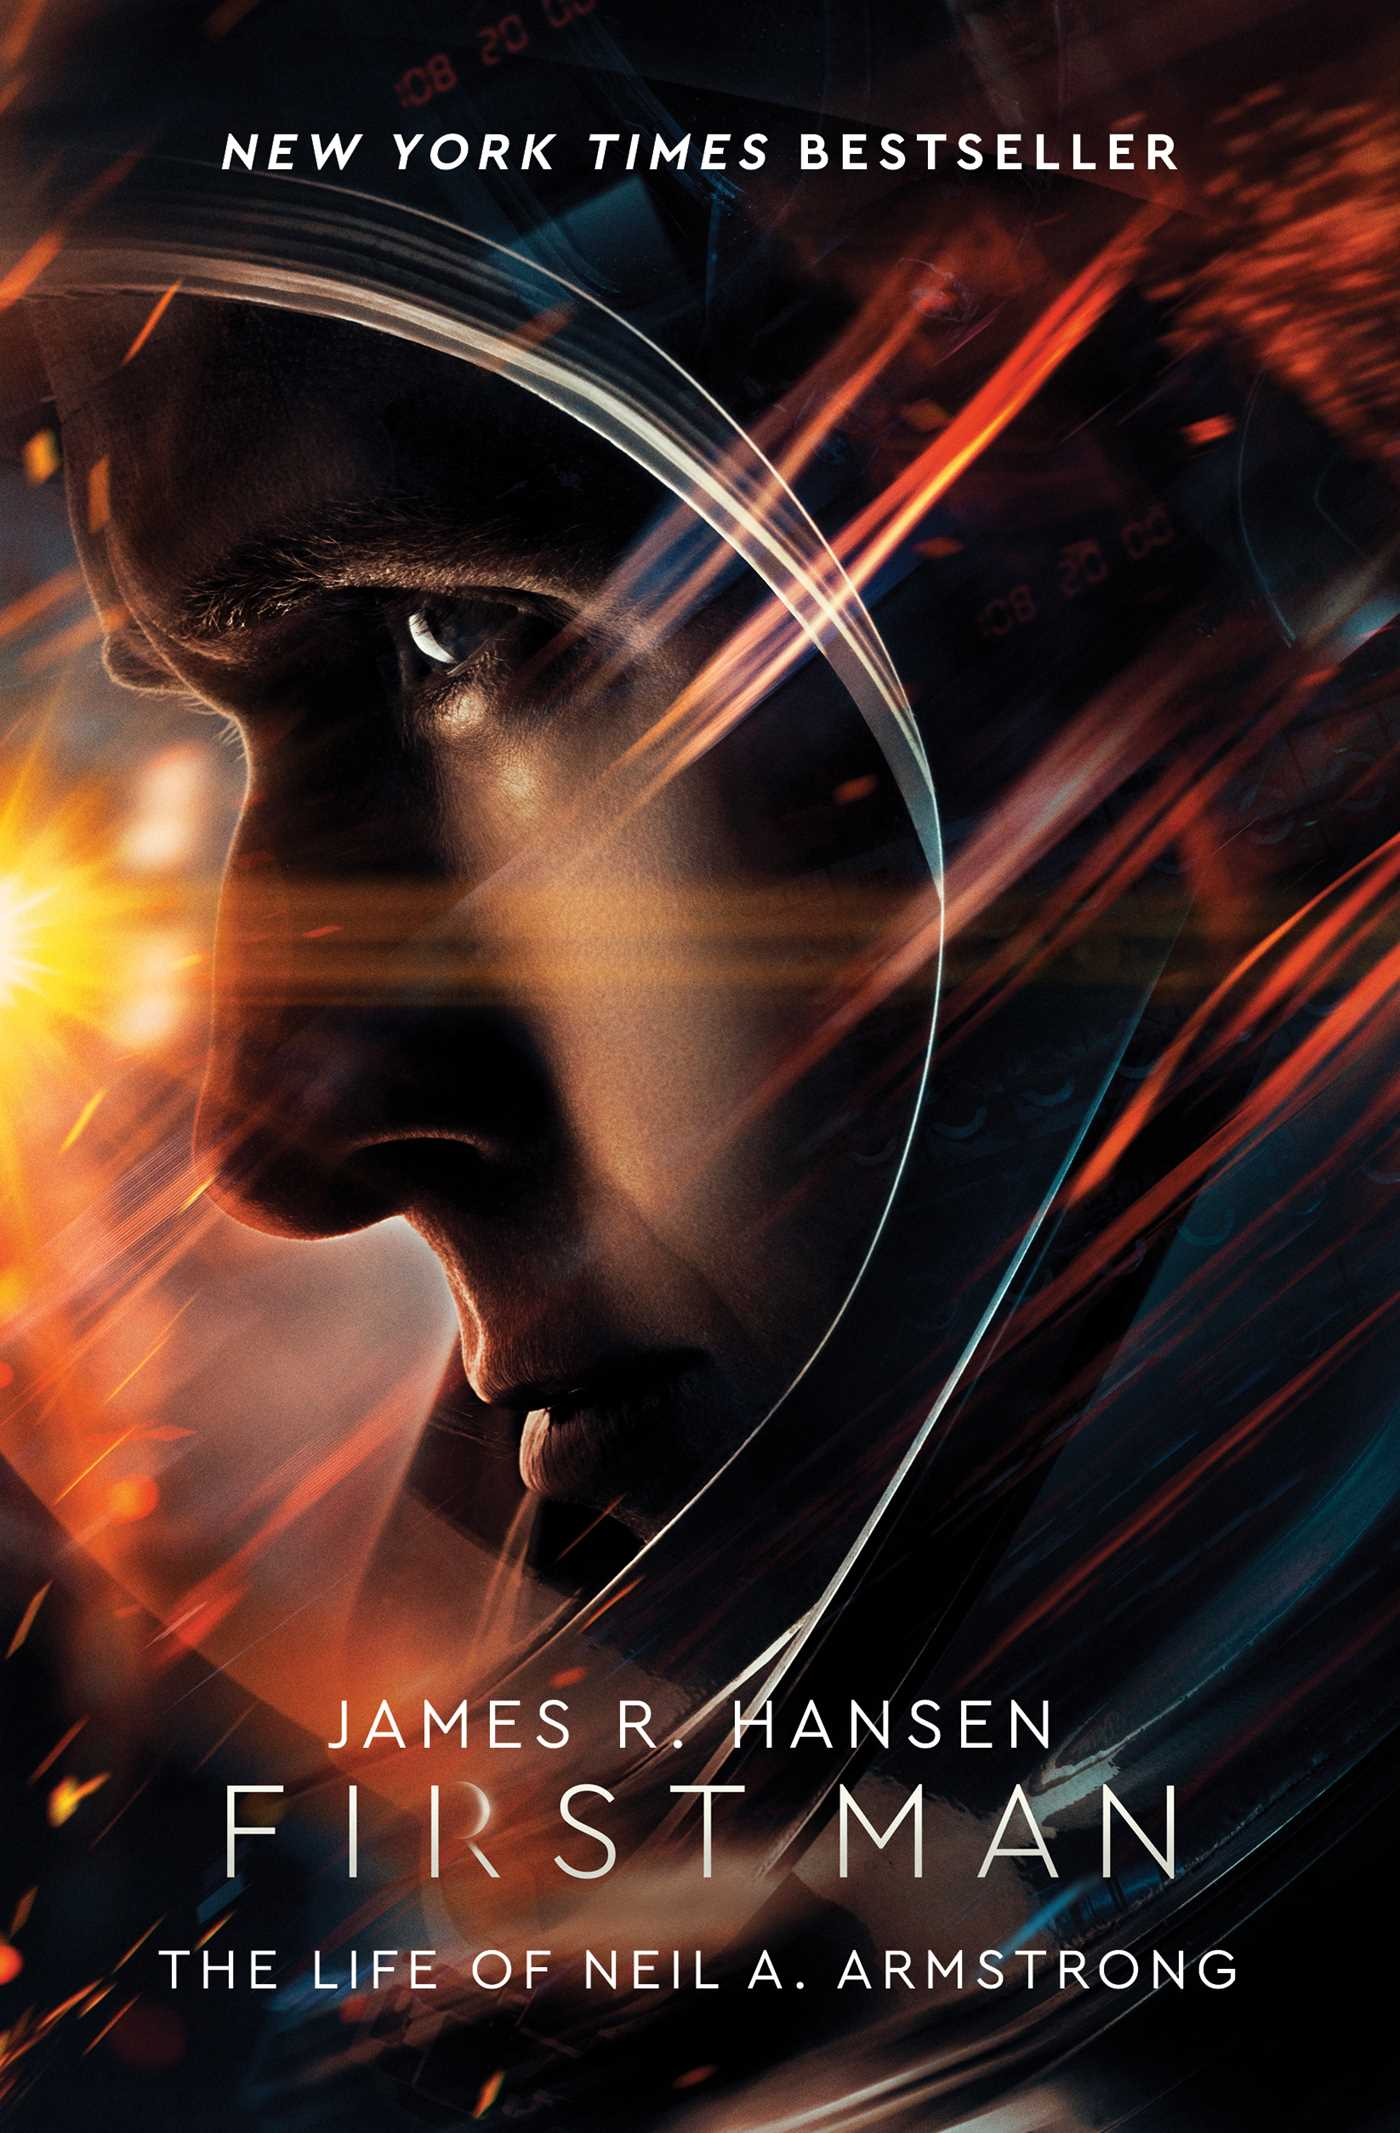 First man 9781982103163 hr